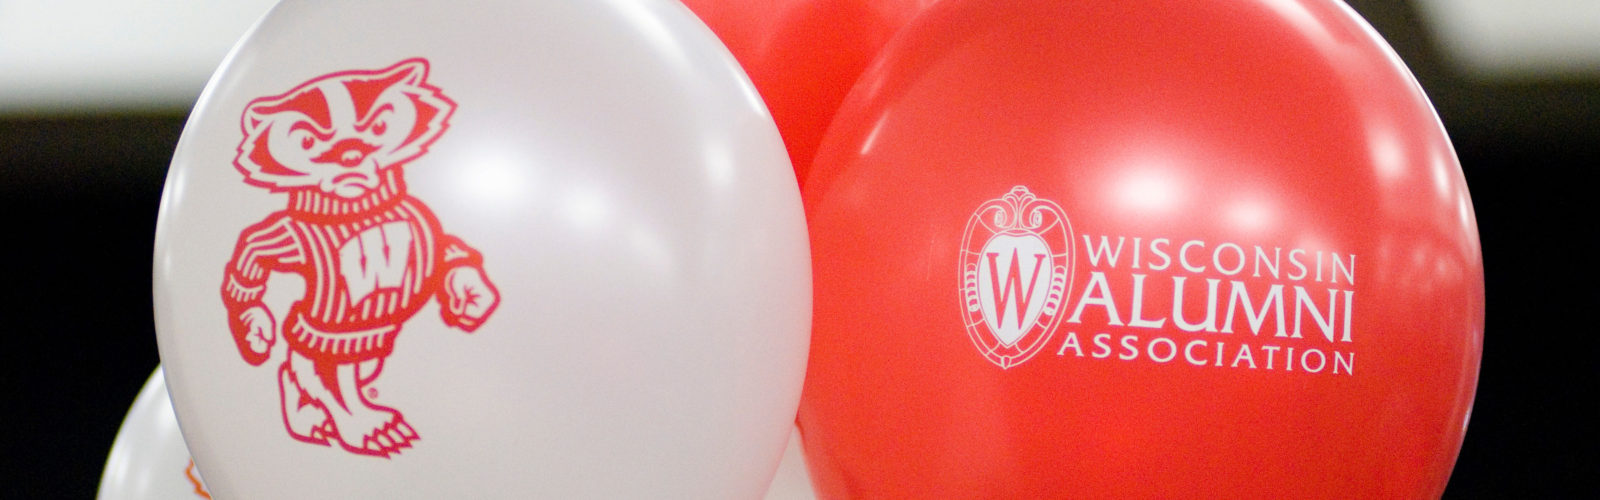 Bucky Badger balloon and Wisconsin Alumni Association balloon